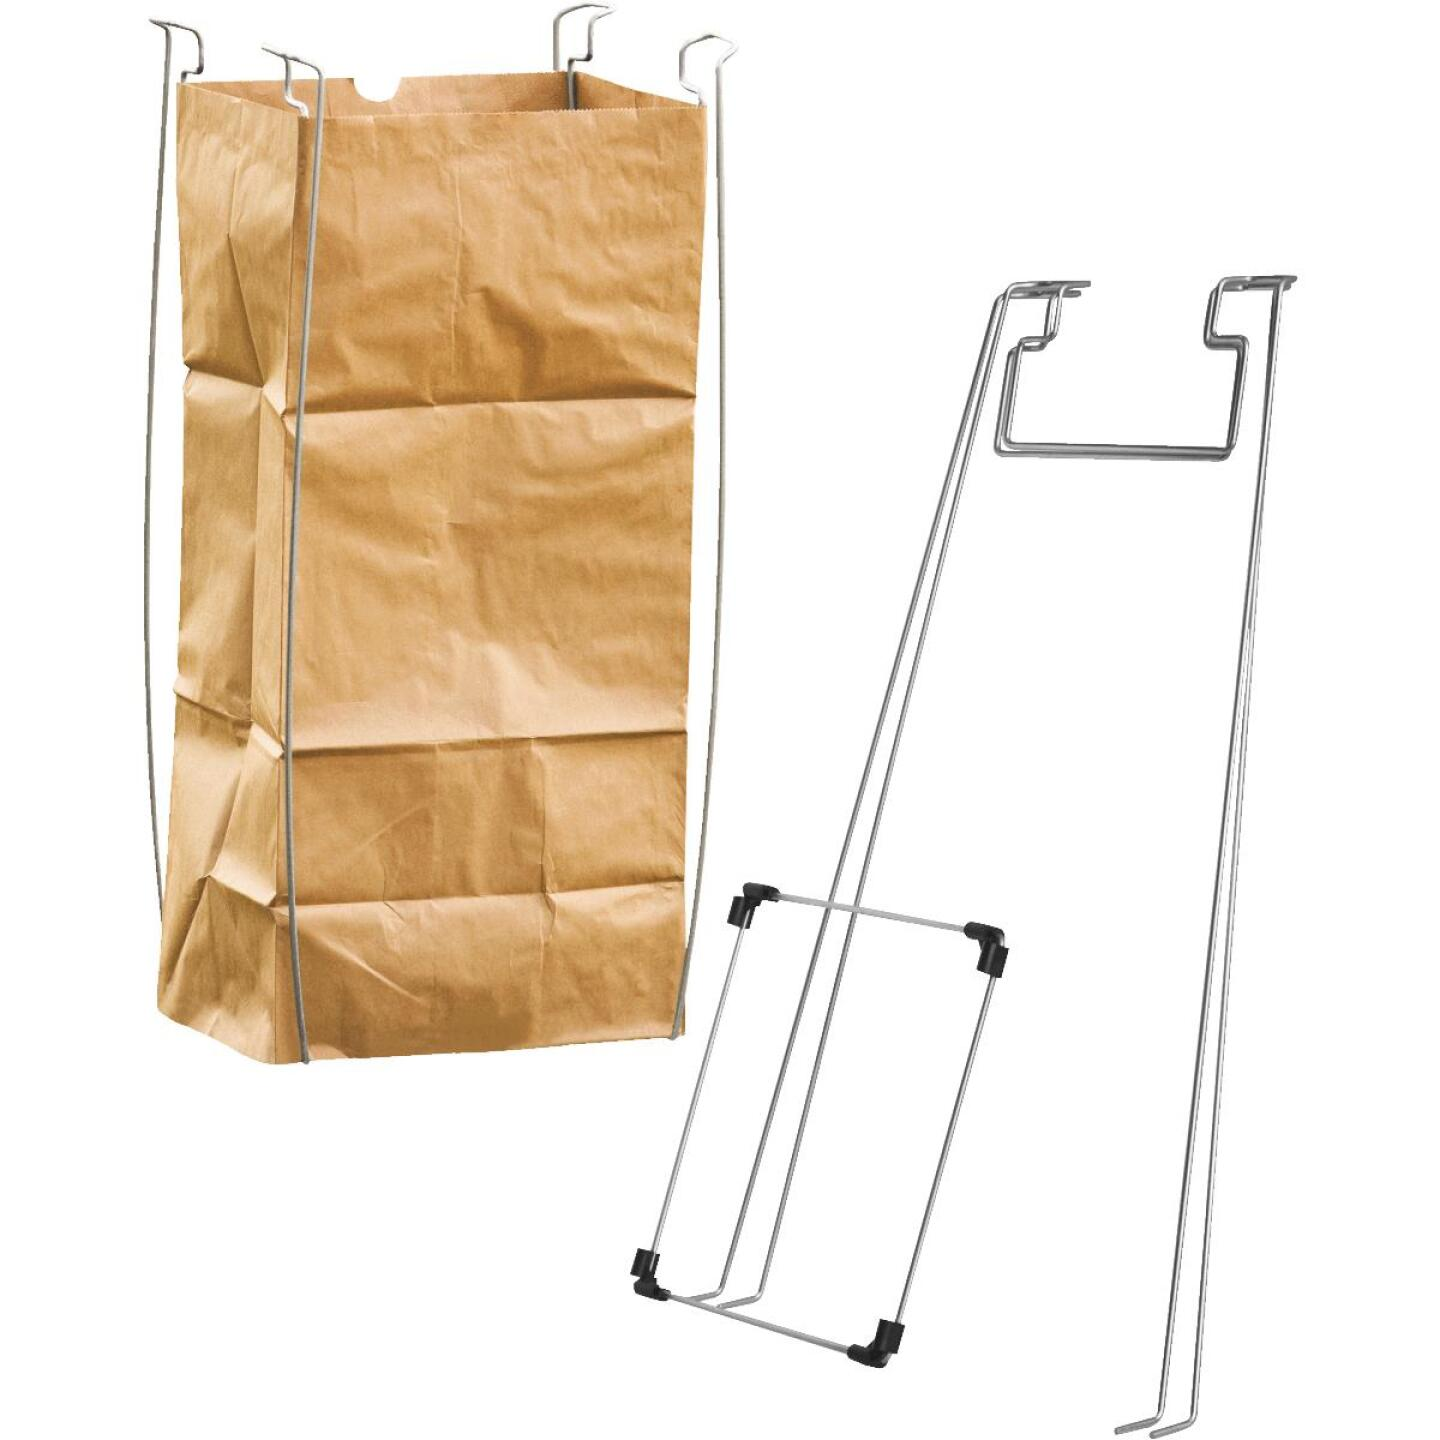 Bag Buddy 55 Gal. Plastic Bag/48 Gal. Paper Bag Capacity Wire Frame Lawn & Yard Bag Holder Image 1